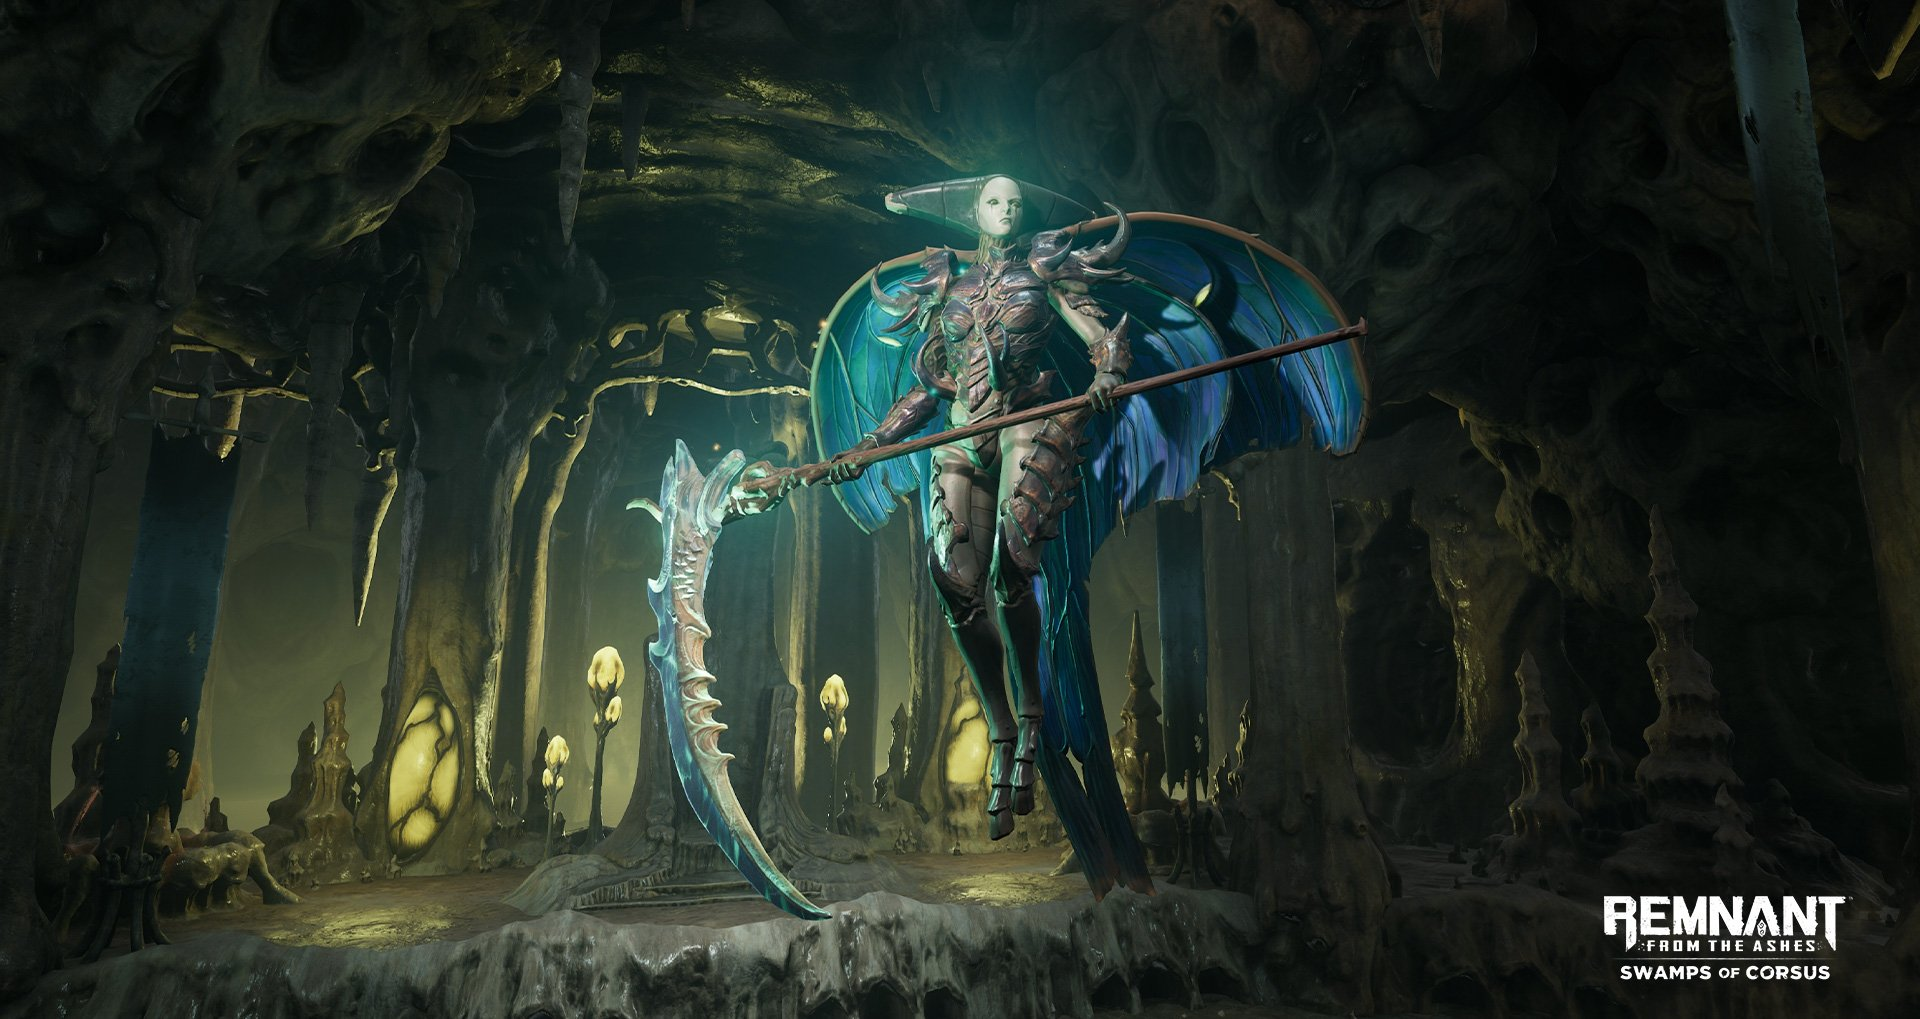 Remnant: From the Ashes is worth revisiting with the Swamps of Corsus DLC screenshot